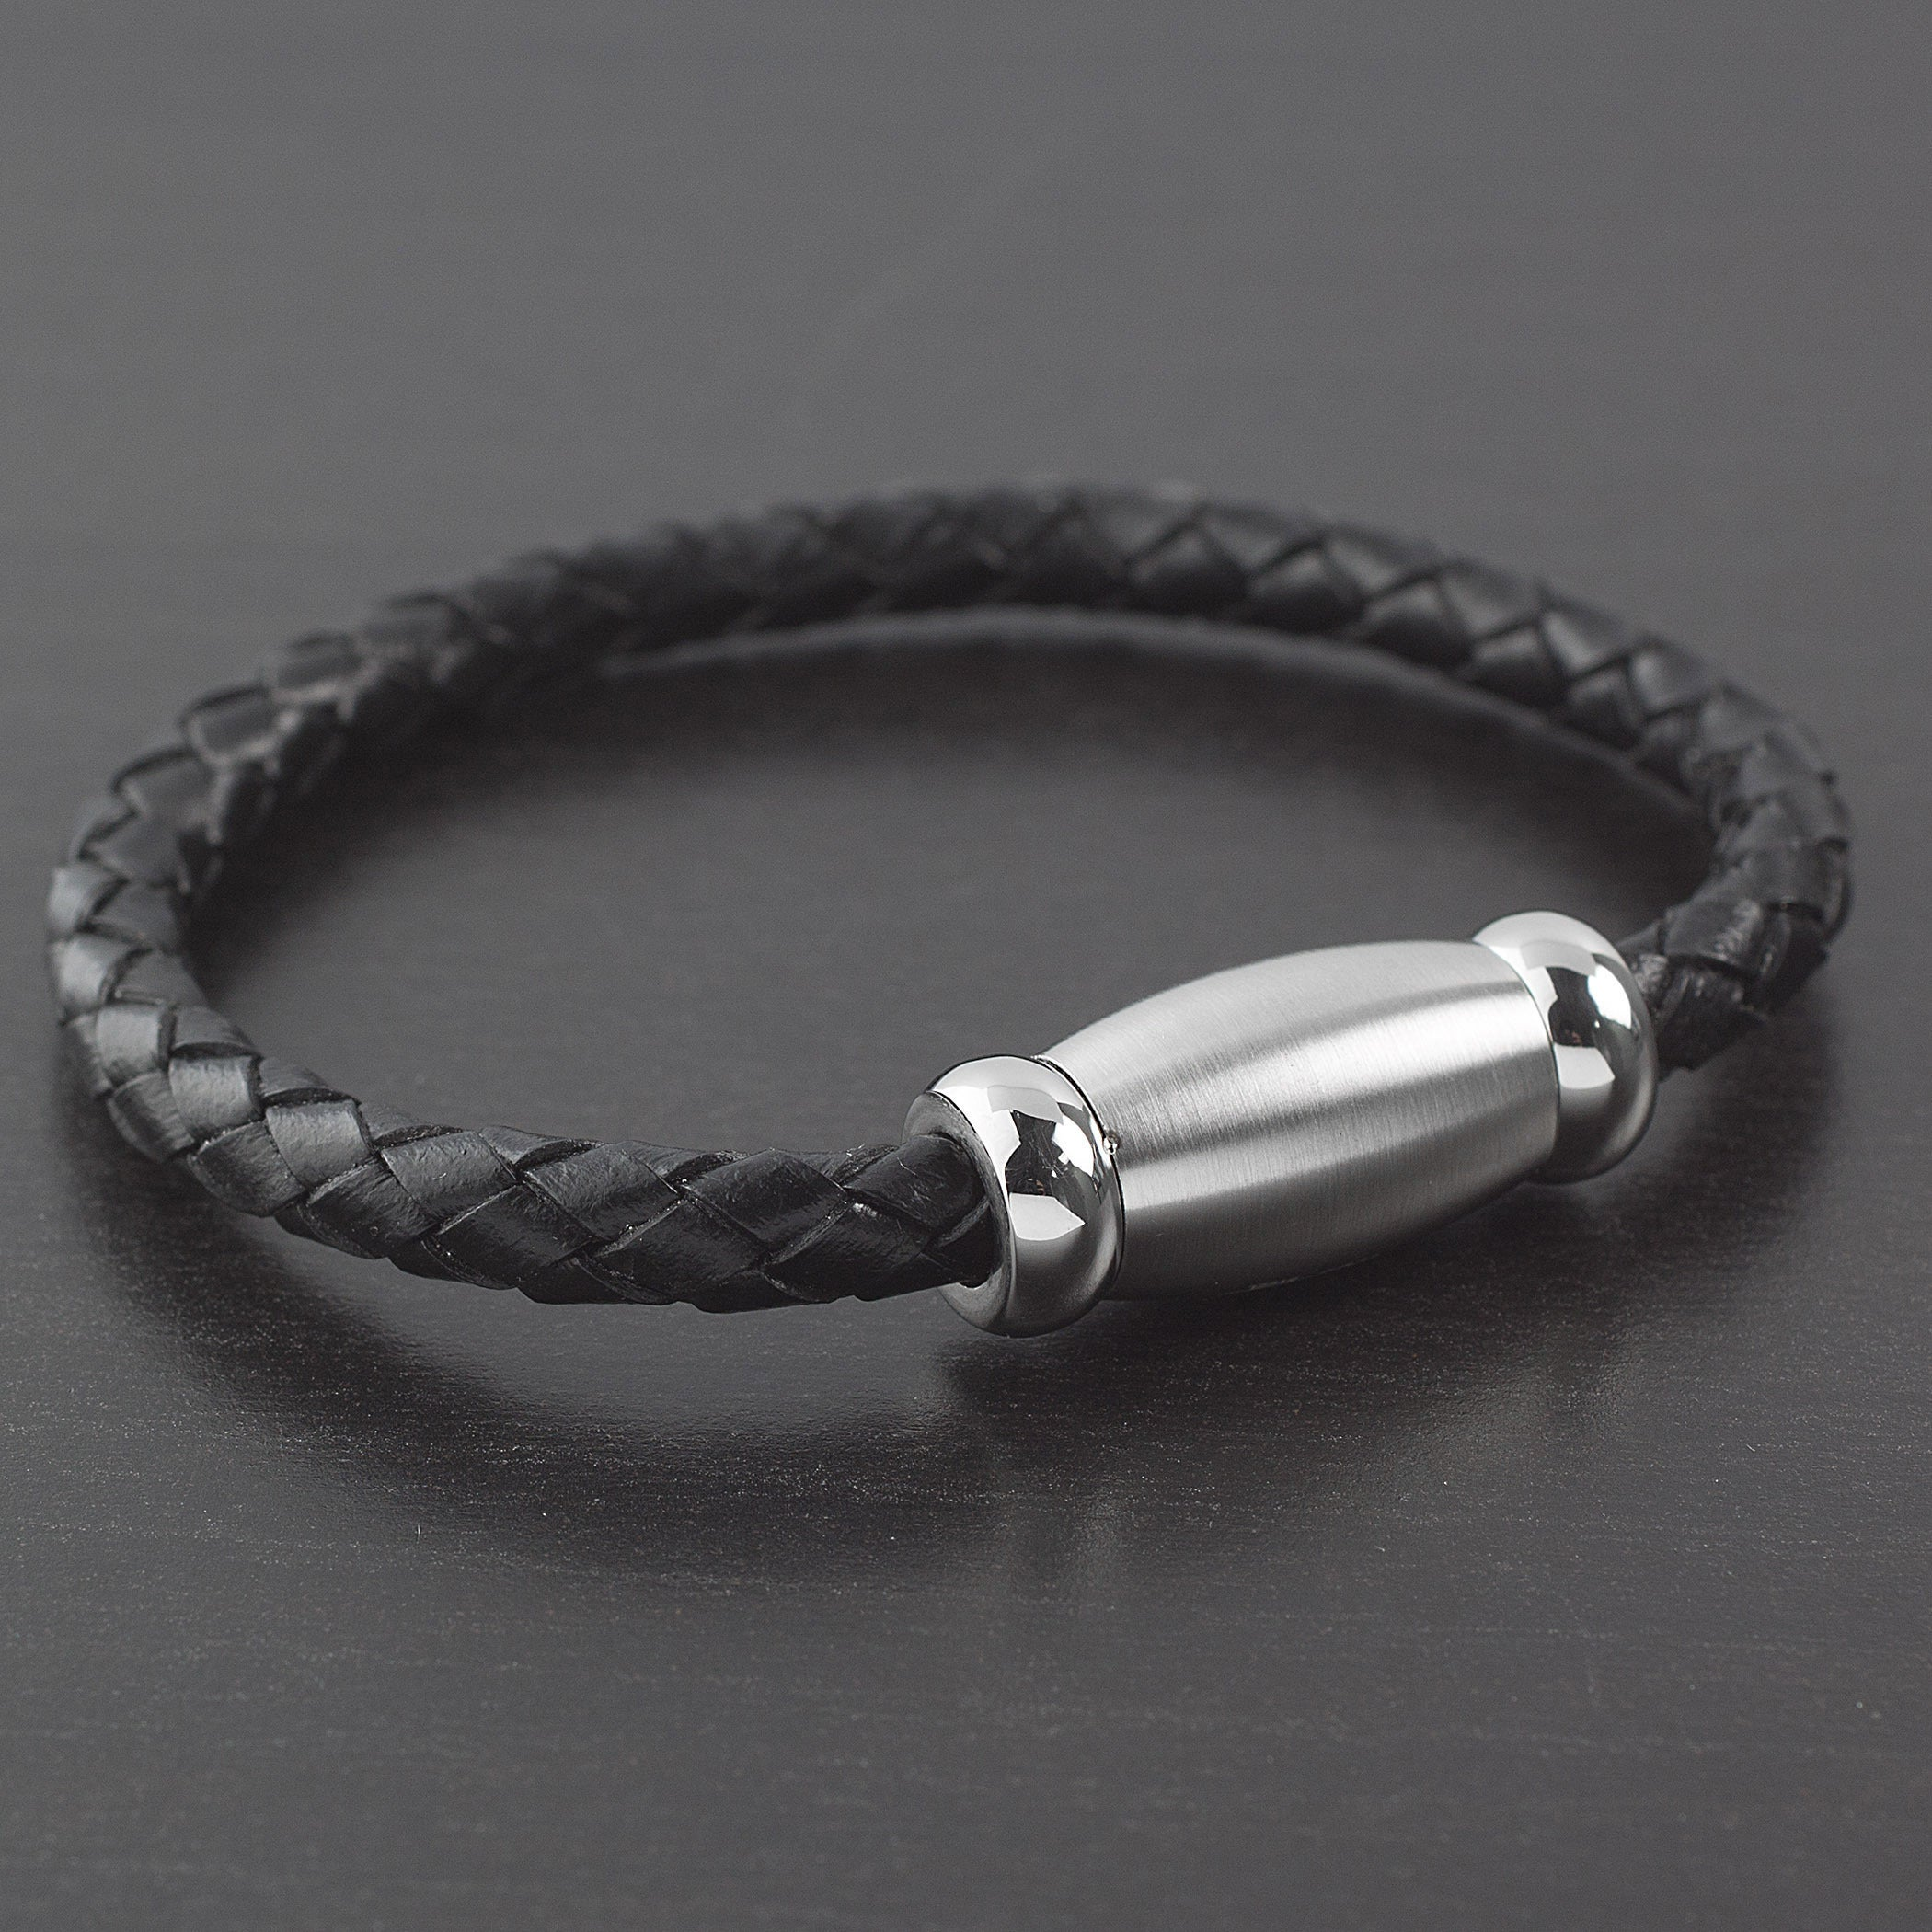 750d780581c4a Men's Stainless Steel Brushed Finish Black Braided Leather Bracelet